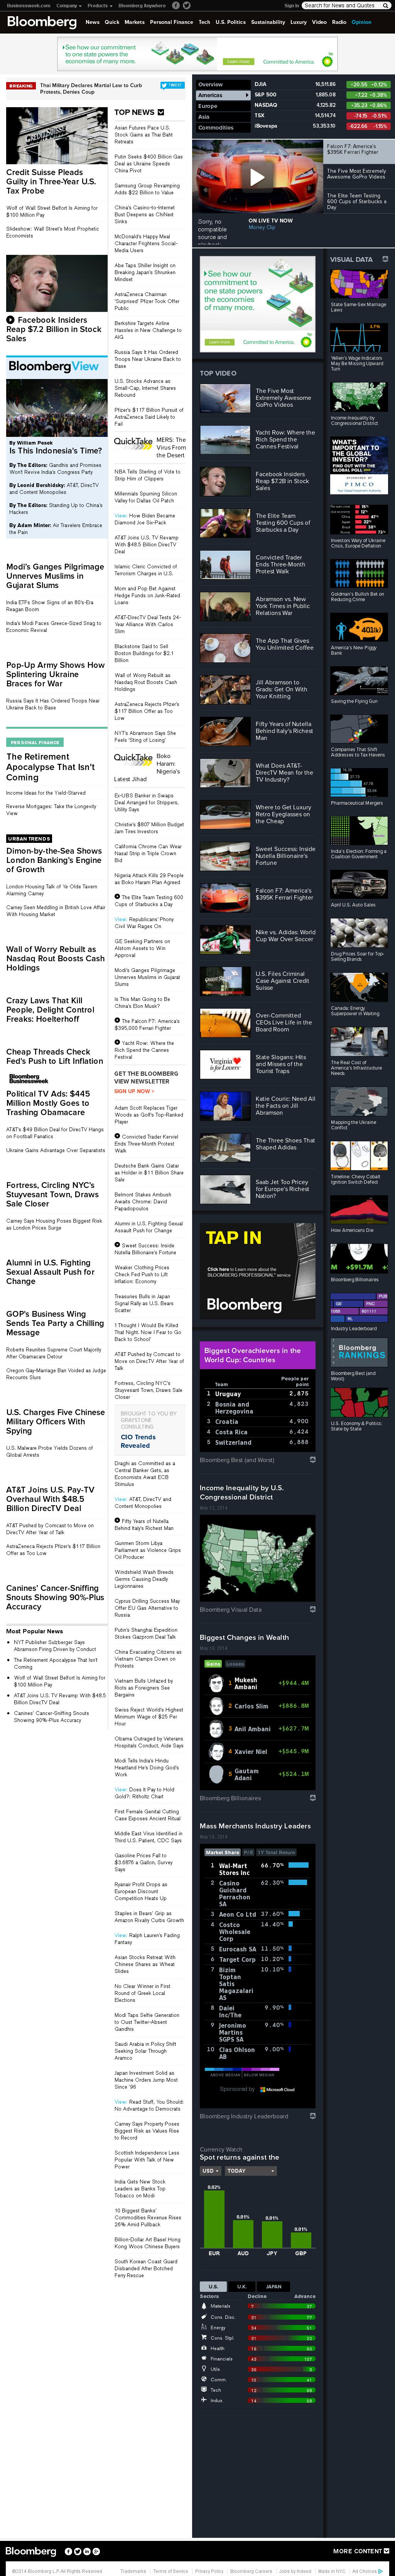 Bloomberg at Tuesday May 20, 2014, midnight UTC